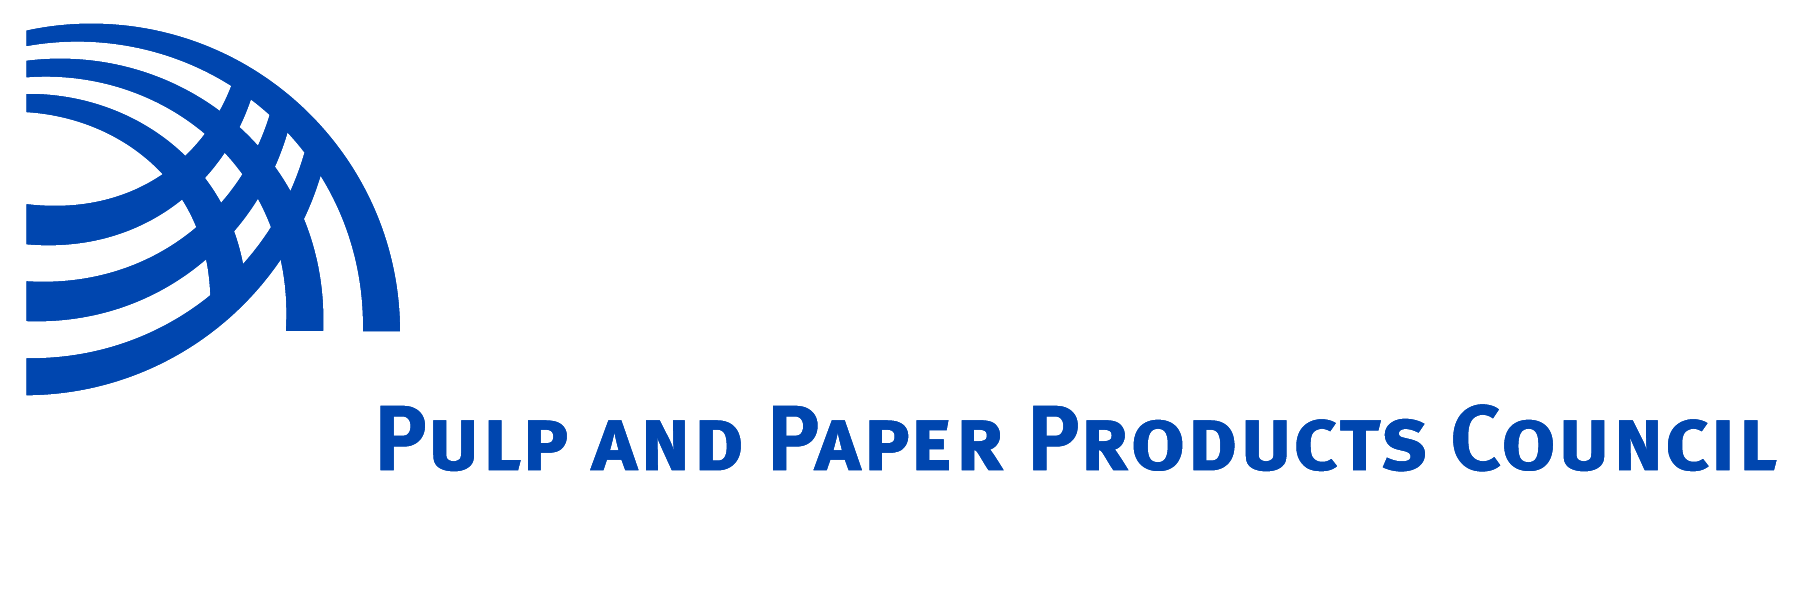 Pulp and Paper Products Council